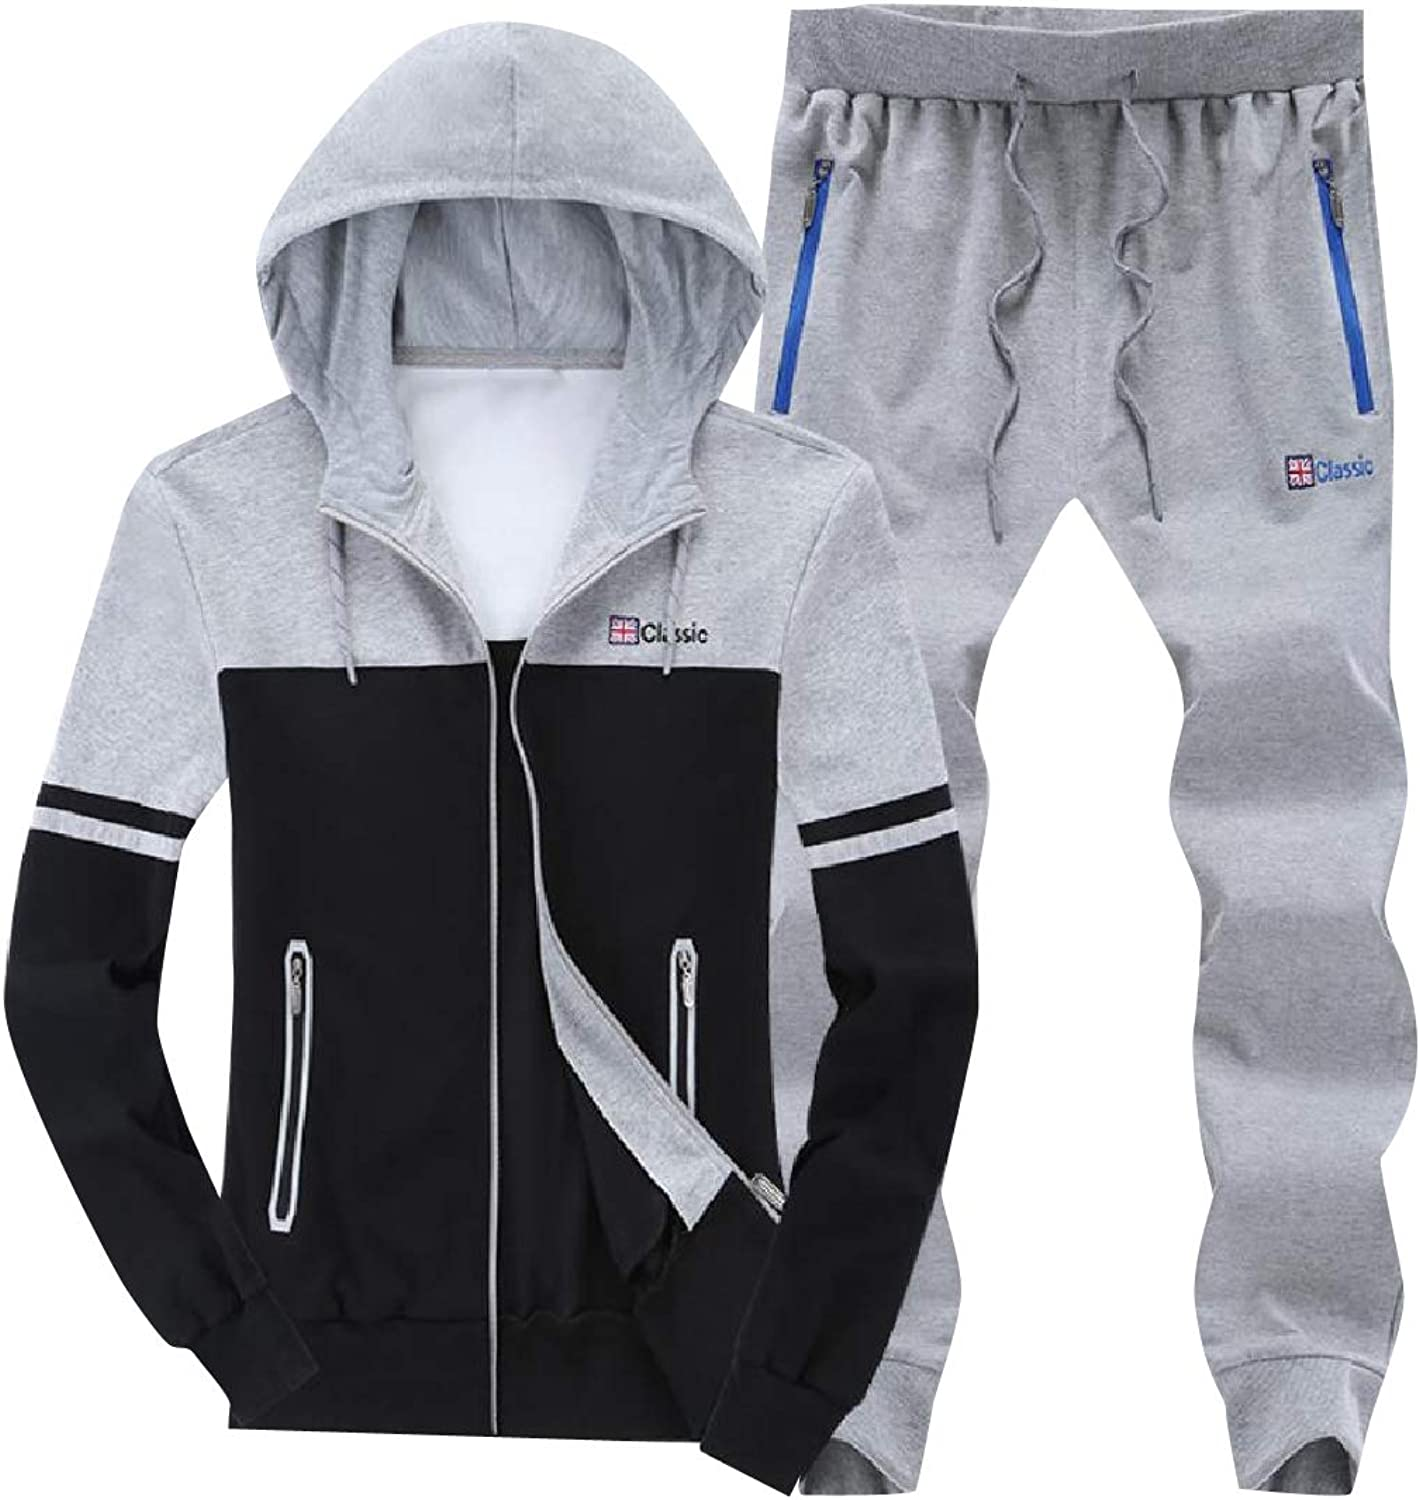 Tryist Mens RelaxedFit Fleece Lined Big Tall Tracksuit Set